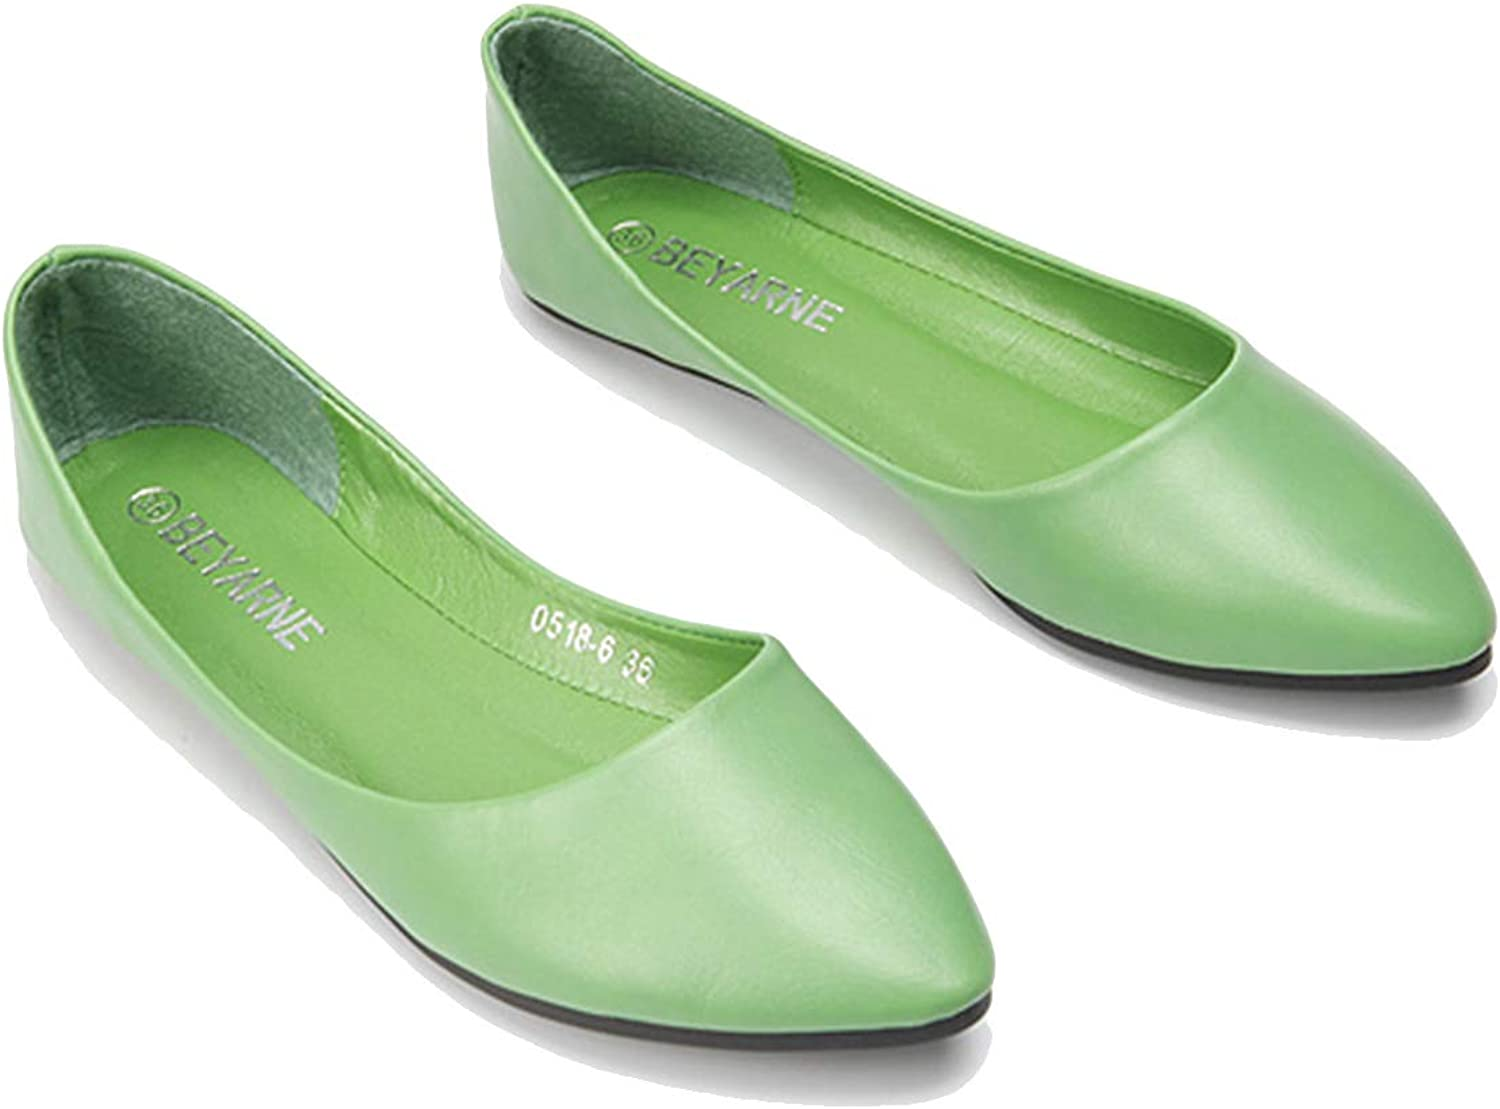 Owen Moll Women Flats, Casual Solid Shallow Pointed Toe shoes 4 colors